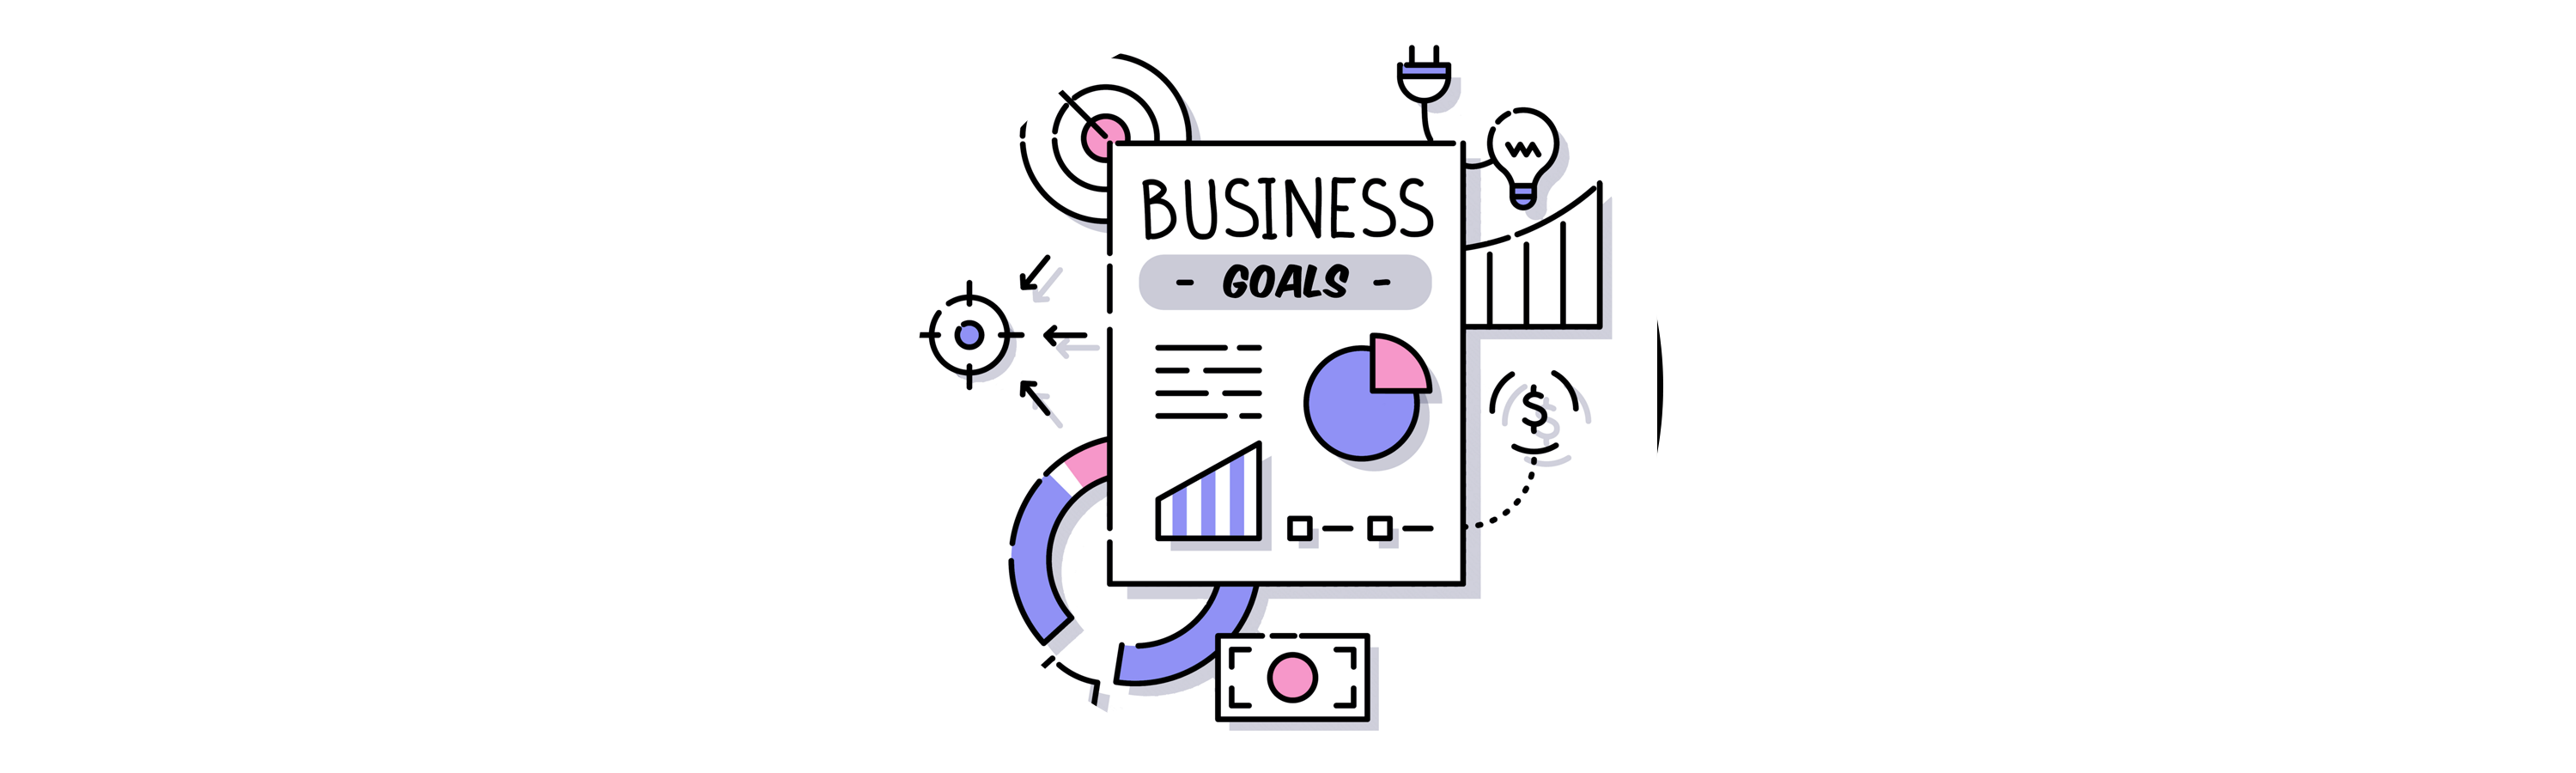 10 Goals for Small Business Owners